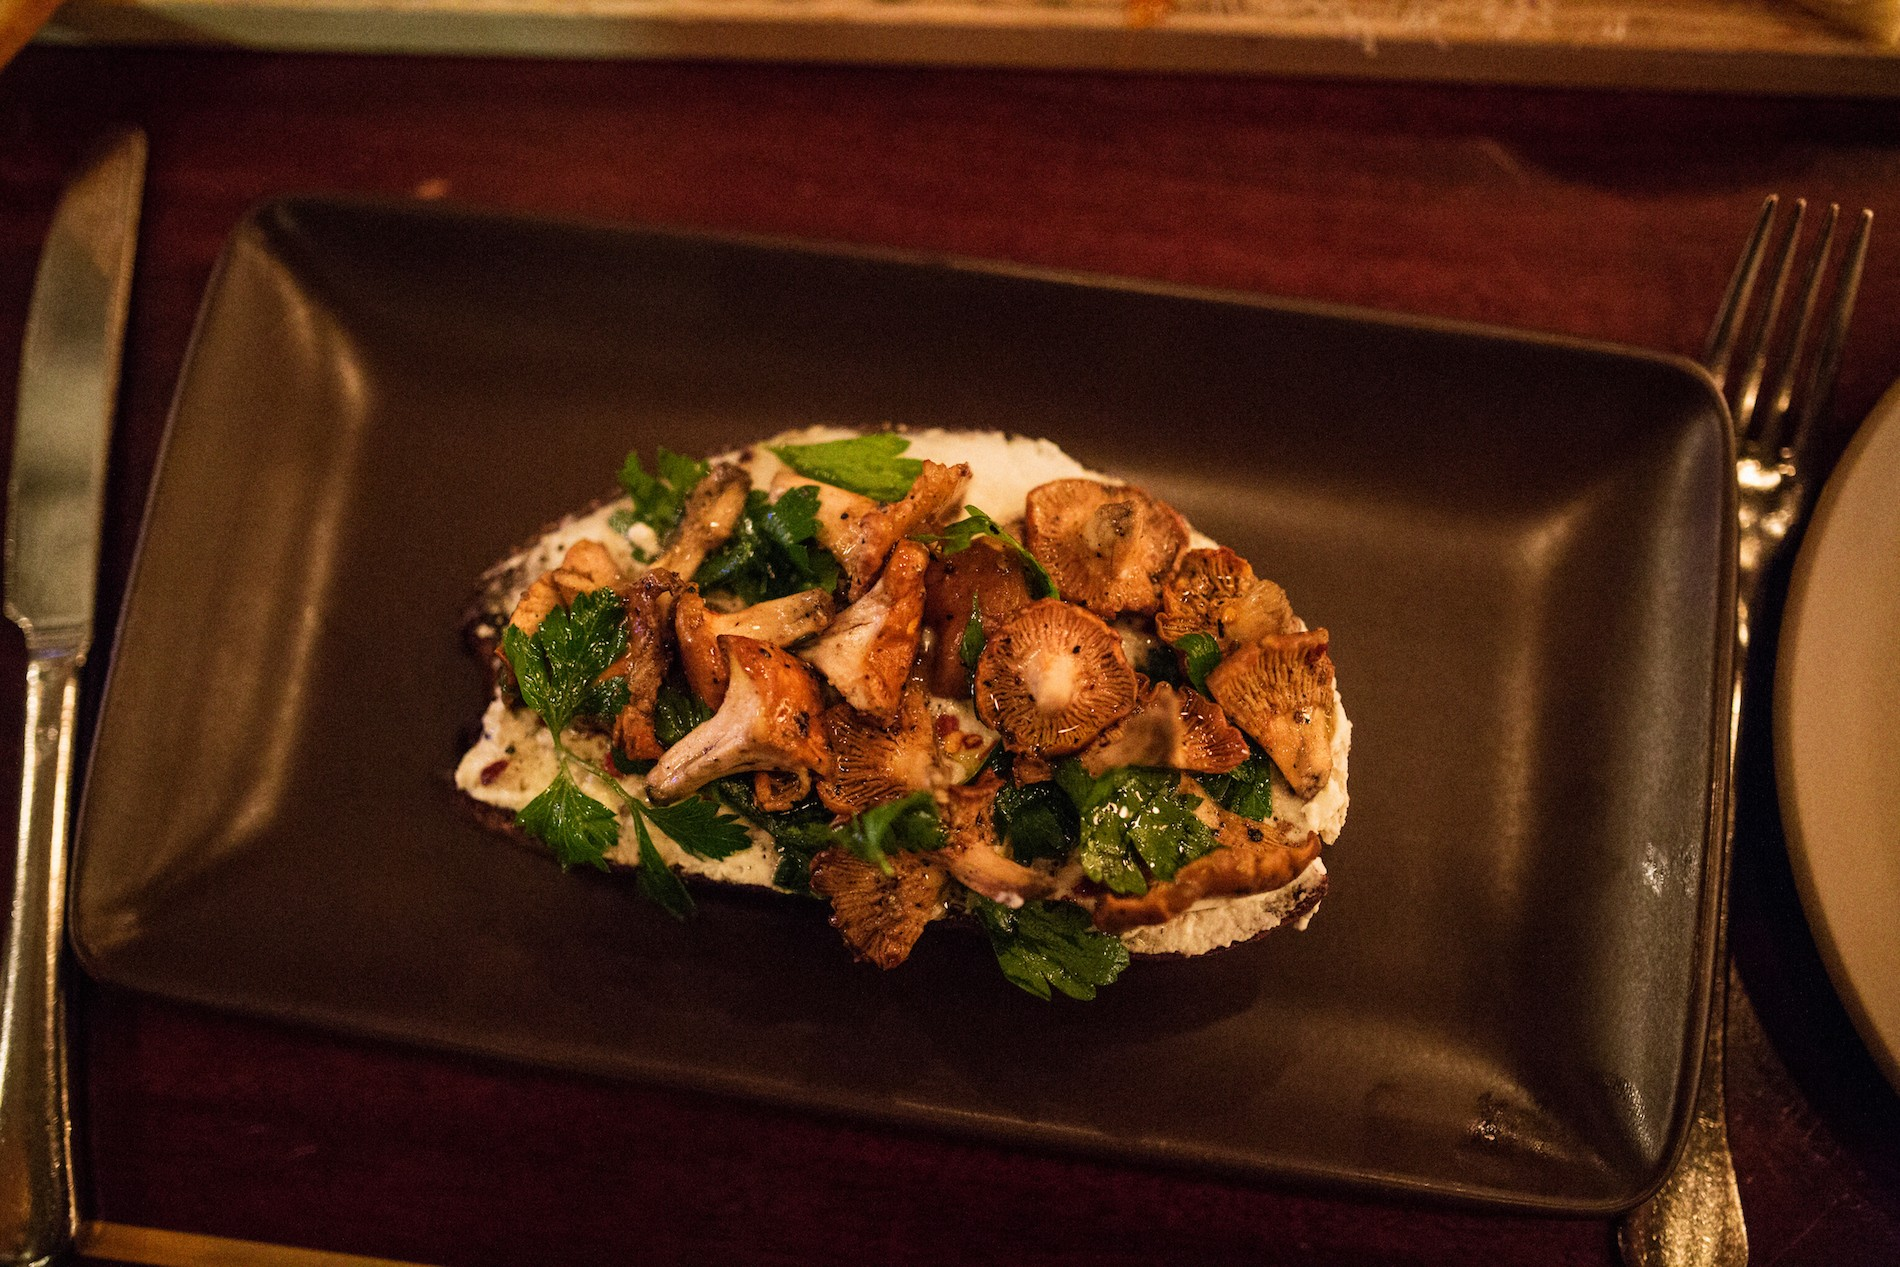 Dinner at Ava Gene's in Portland. A toast made with our foraged chanterelles. Mushrooms in Portland, Oregon. August 2016. Matt Lutton / Boreal Collective for Vice Munchies